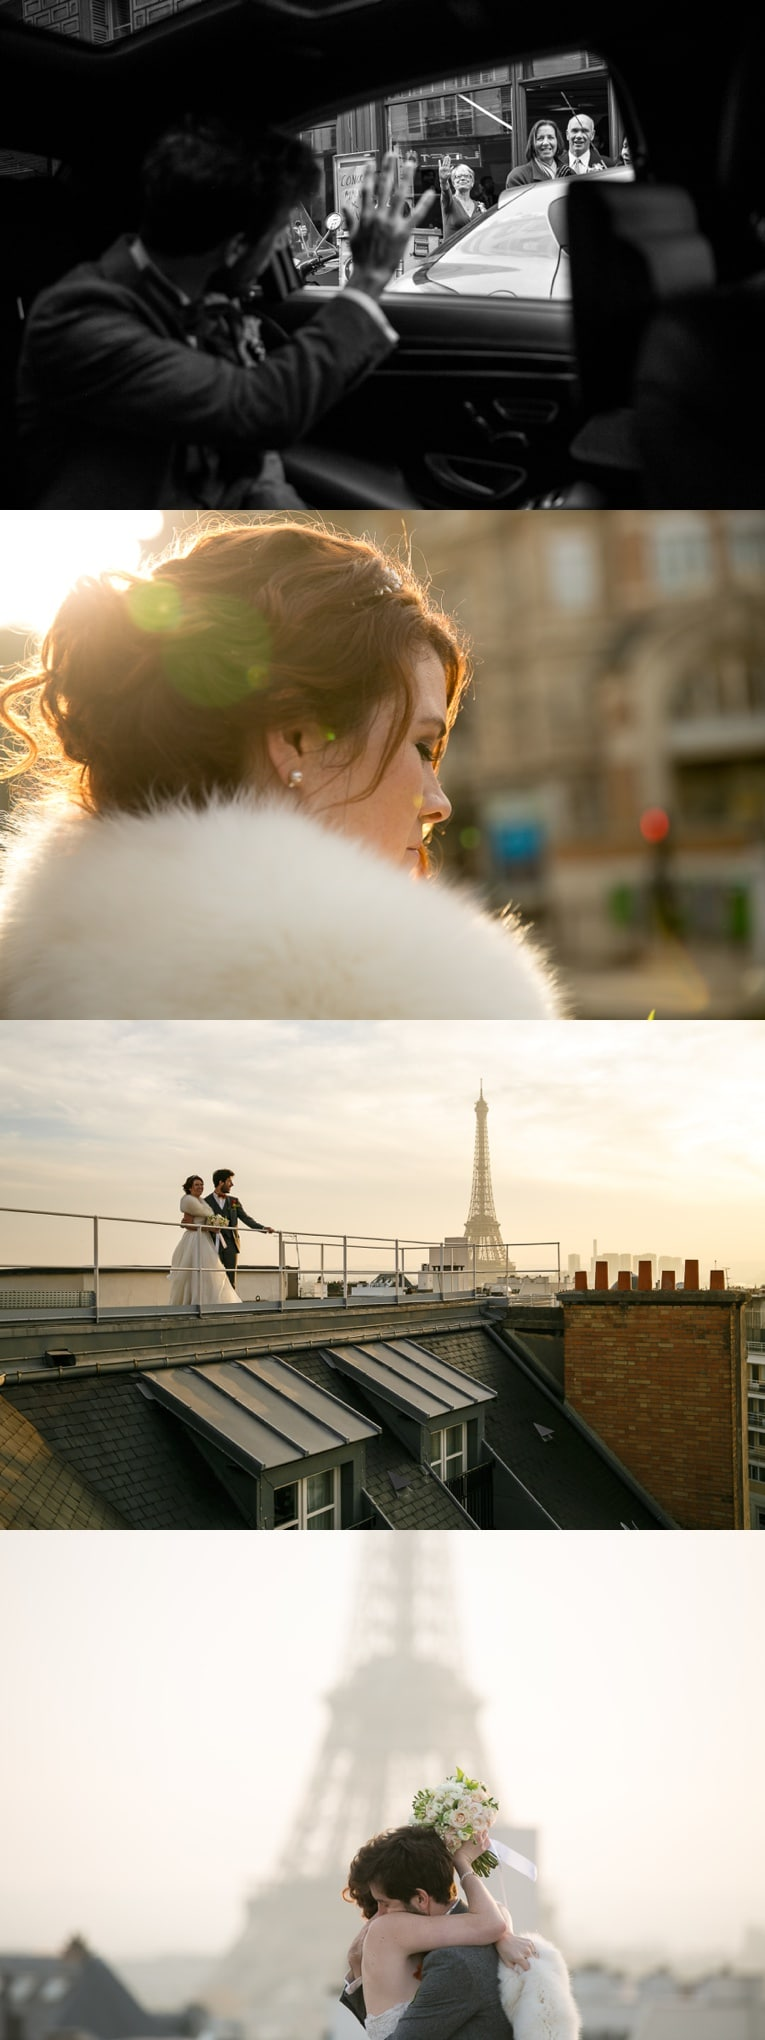 wedding-four-seasons-paris-13